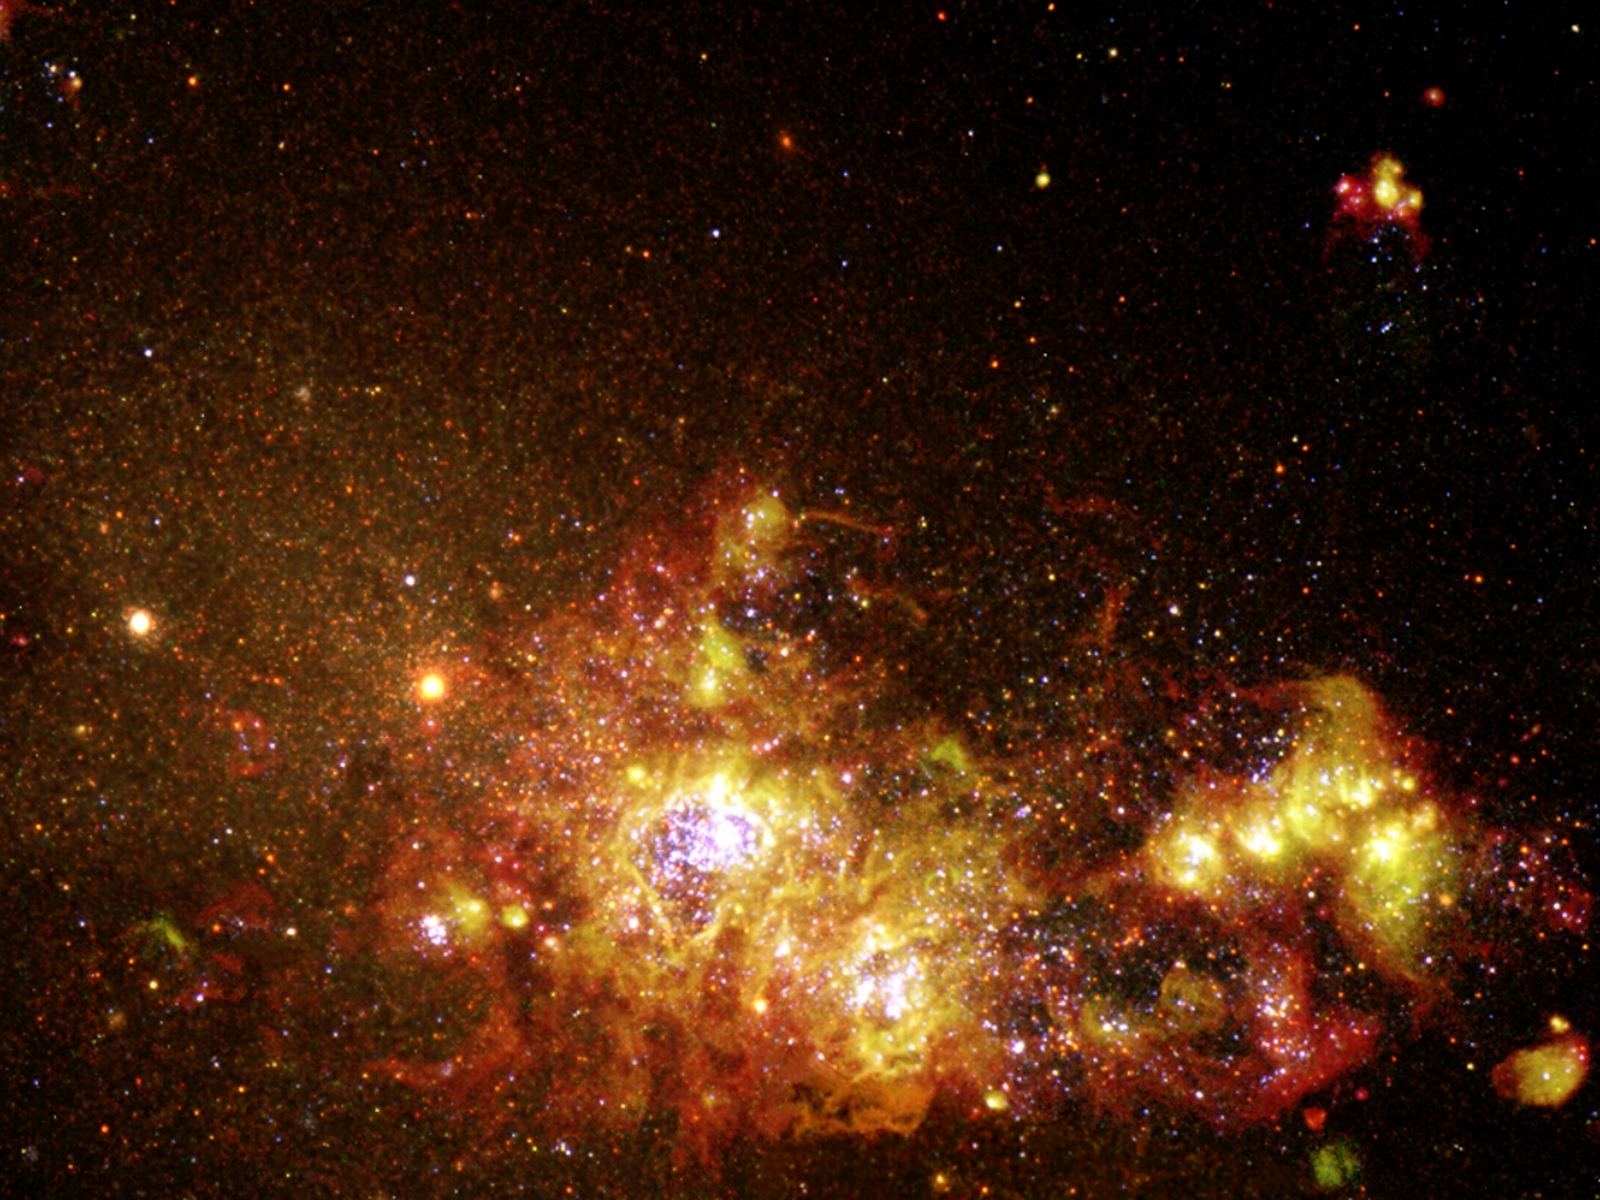 Space Wallpapers High Resolution: Space Wallpaper High Resolution